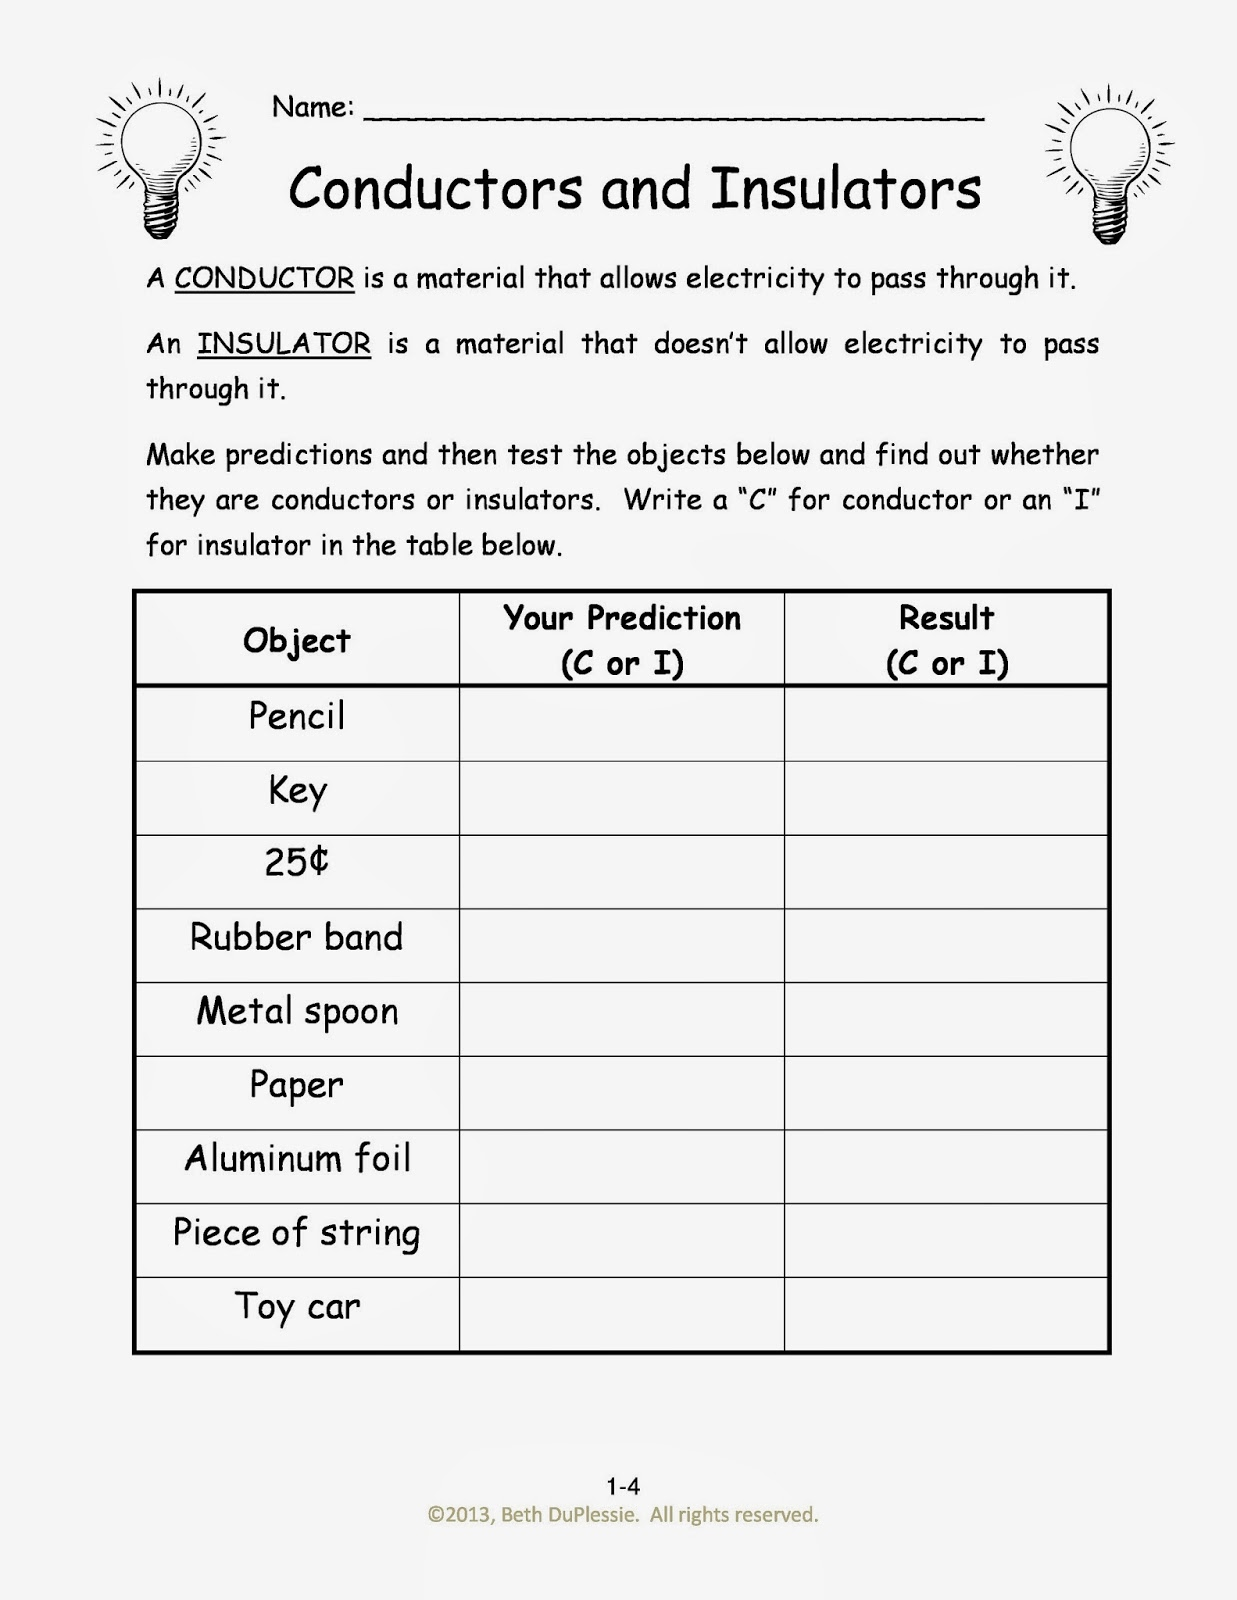 Worksheets Electricity And Magnetism Worksheets week 6 electrical engineering electricity homeschool adventures an insulator is a material that doesnt allow to pass through it